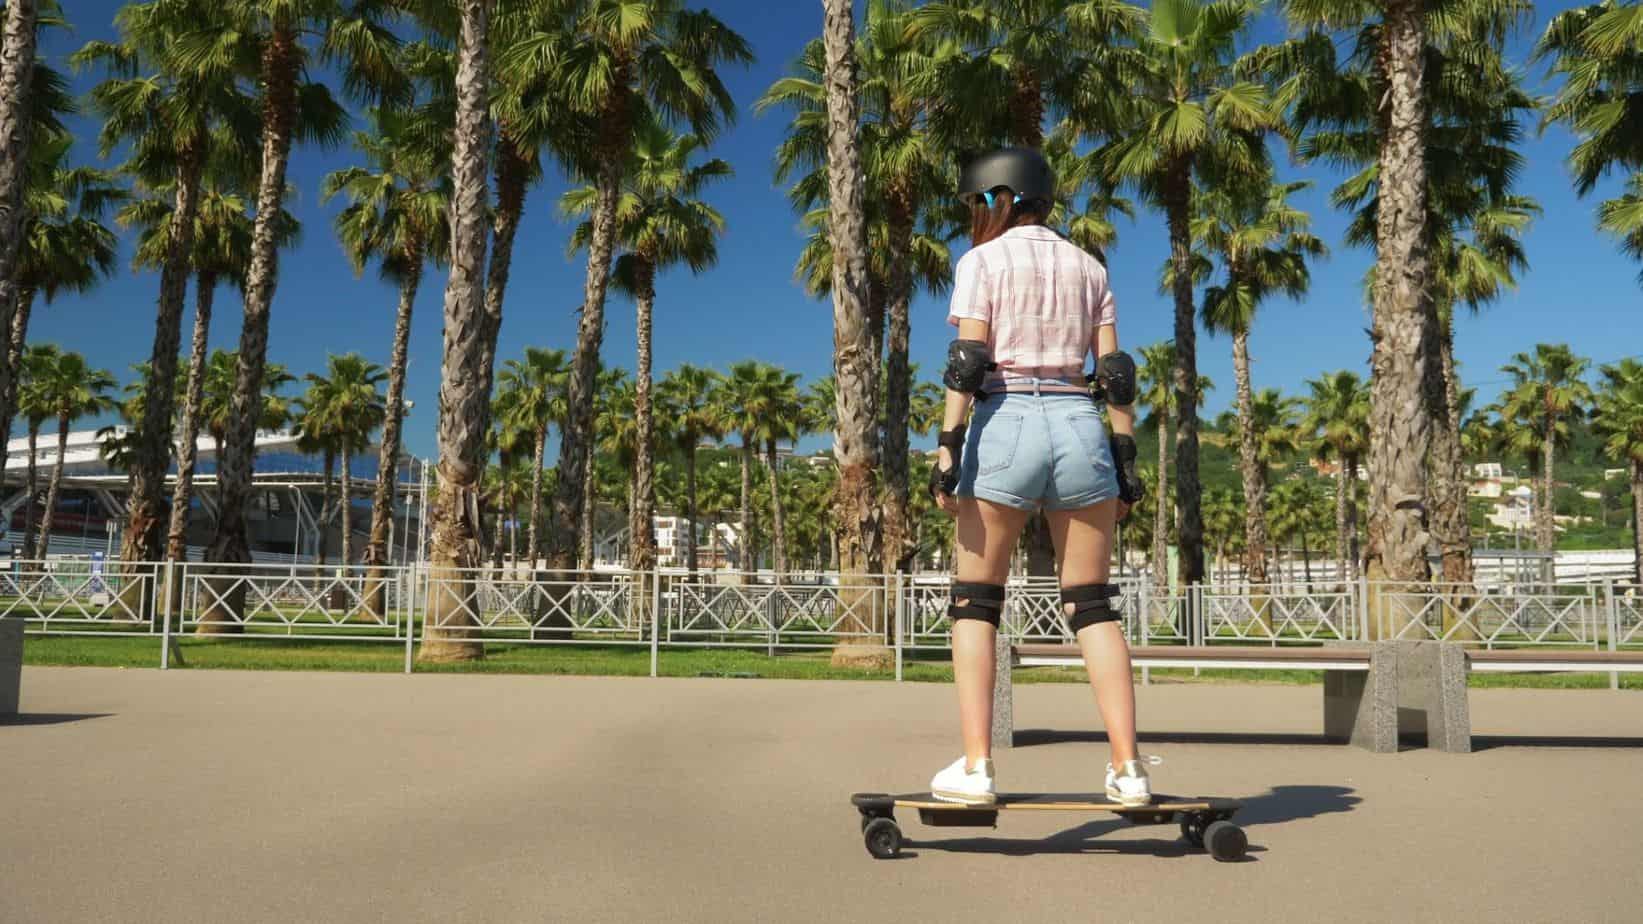 Are Electric Longboards Safe? We Have Listed The Pros & Cons